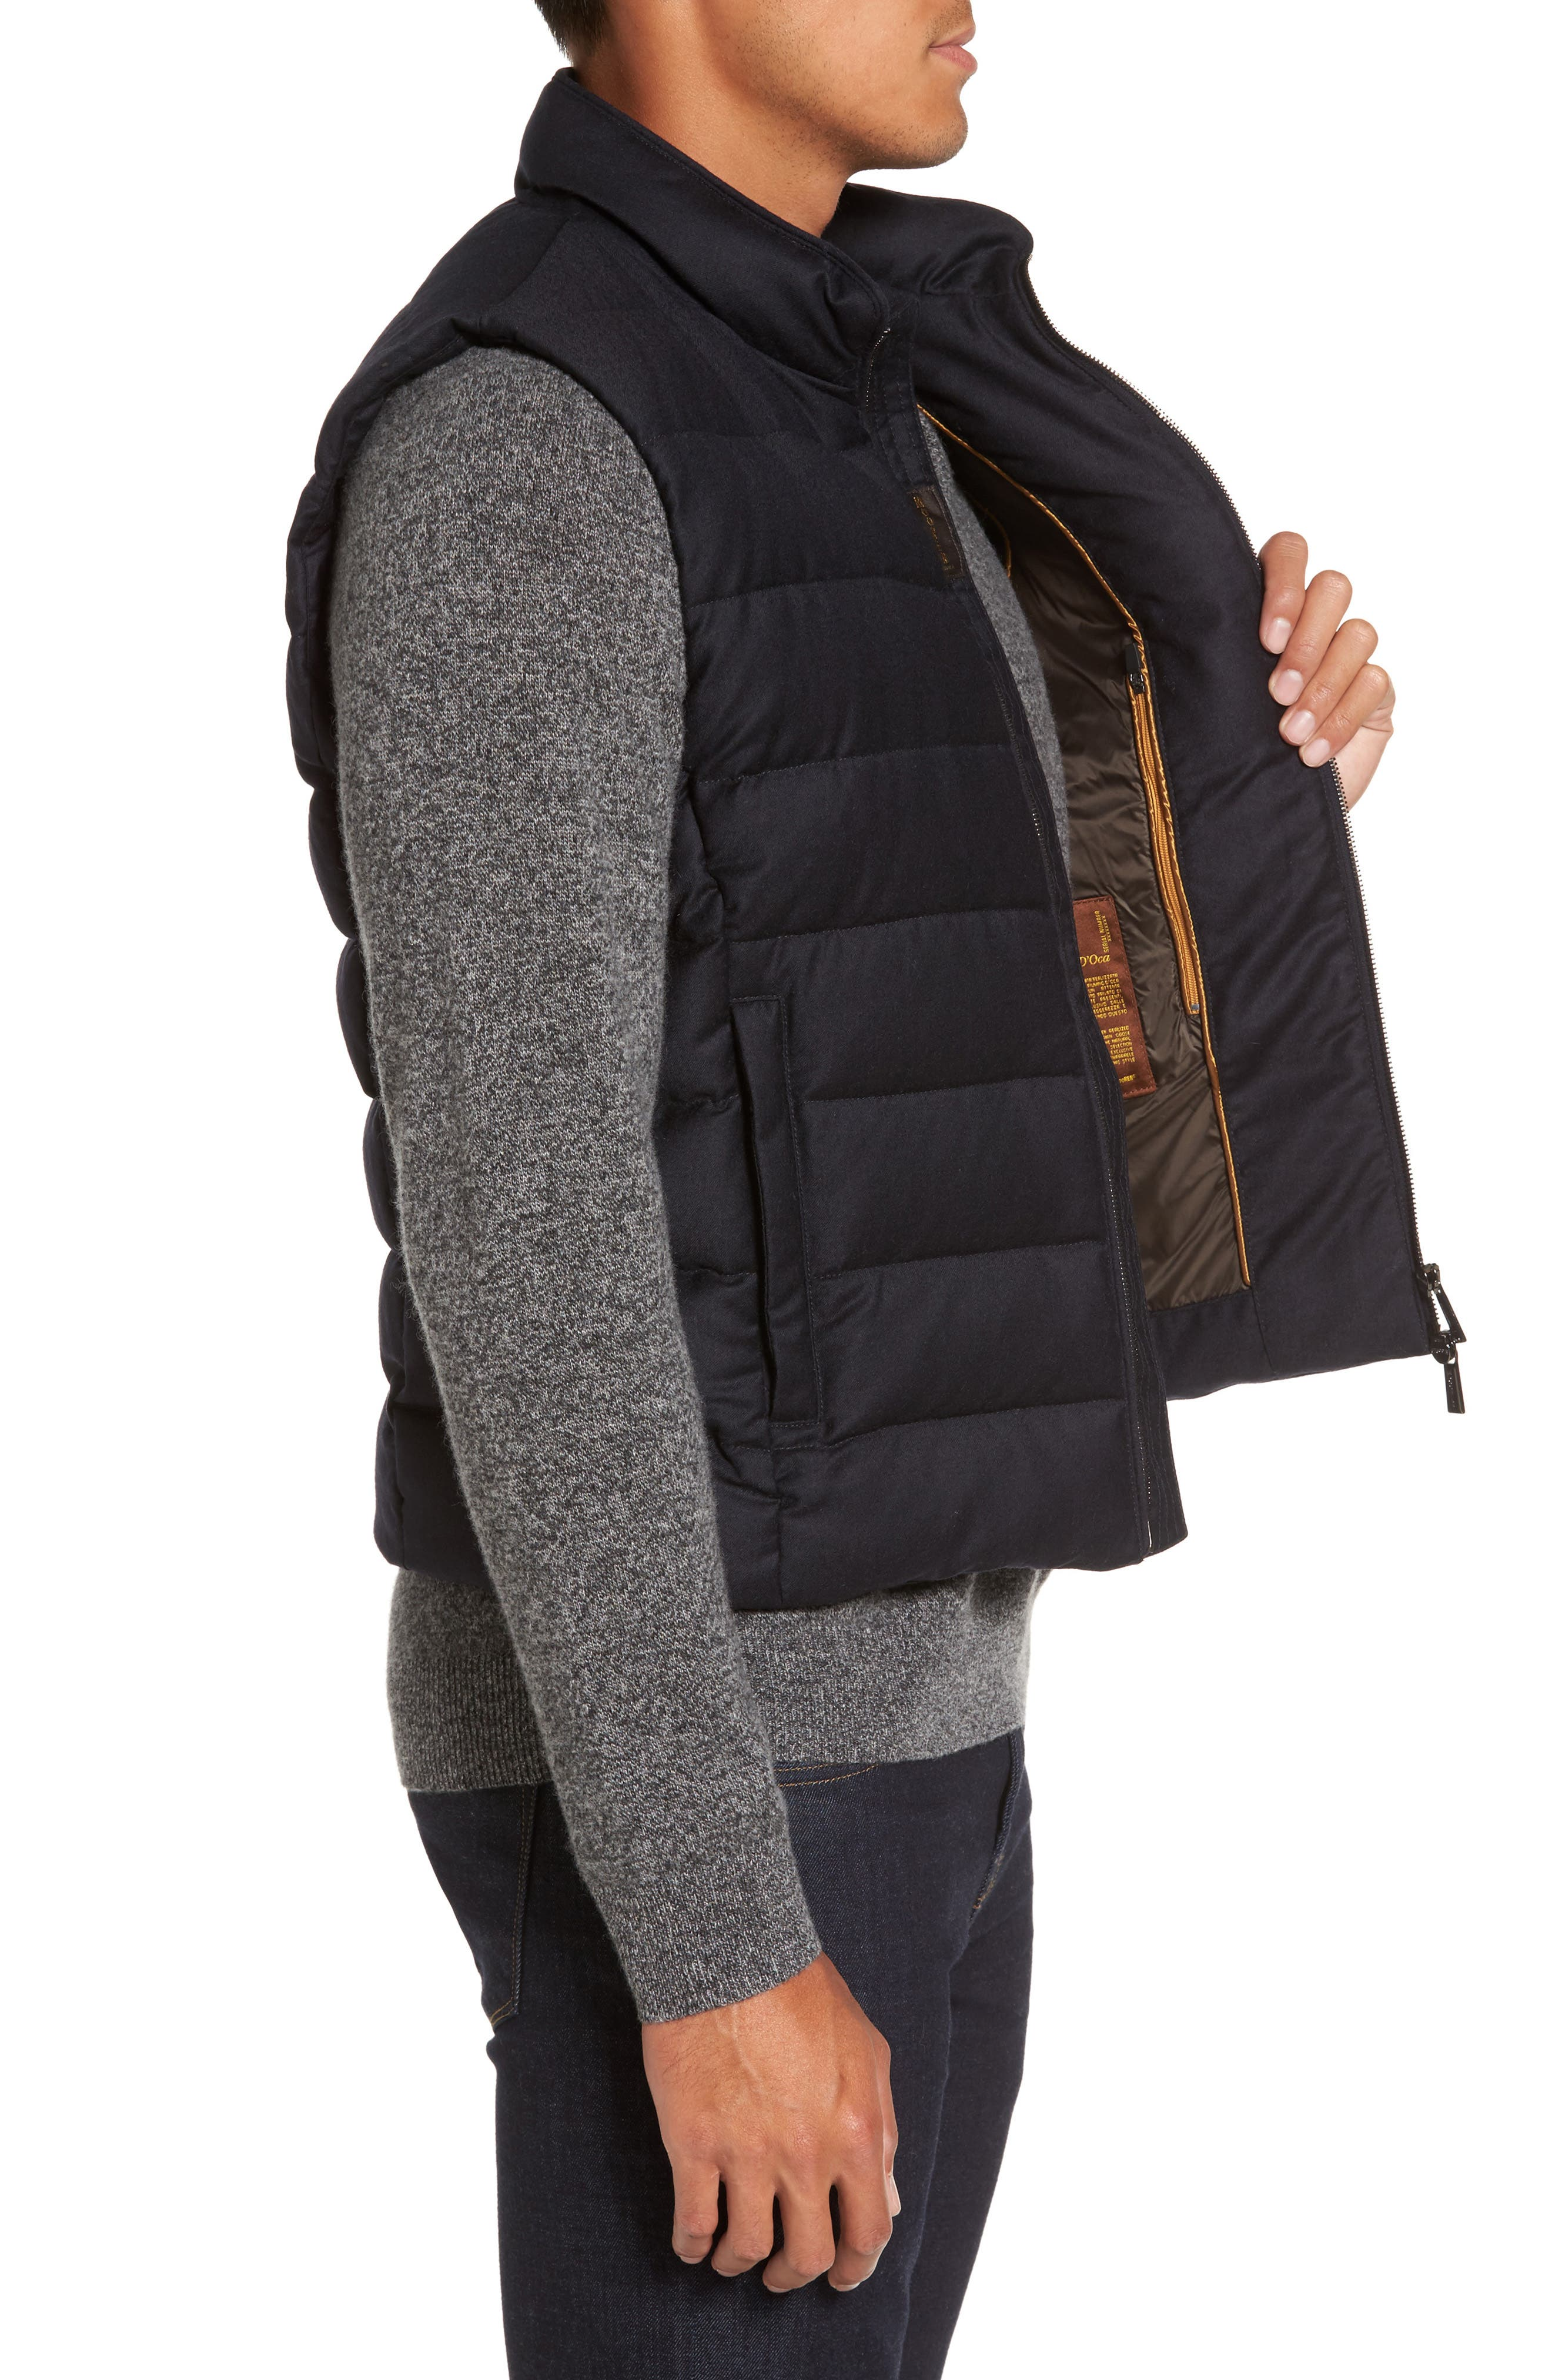 Oliver L Wool & Cashmere Flannel Waterproof Vest,                             Alternate thumbnail 3, color,                             402